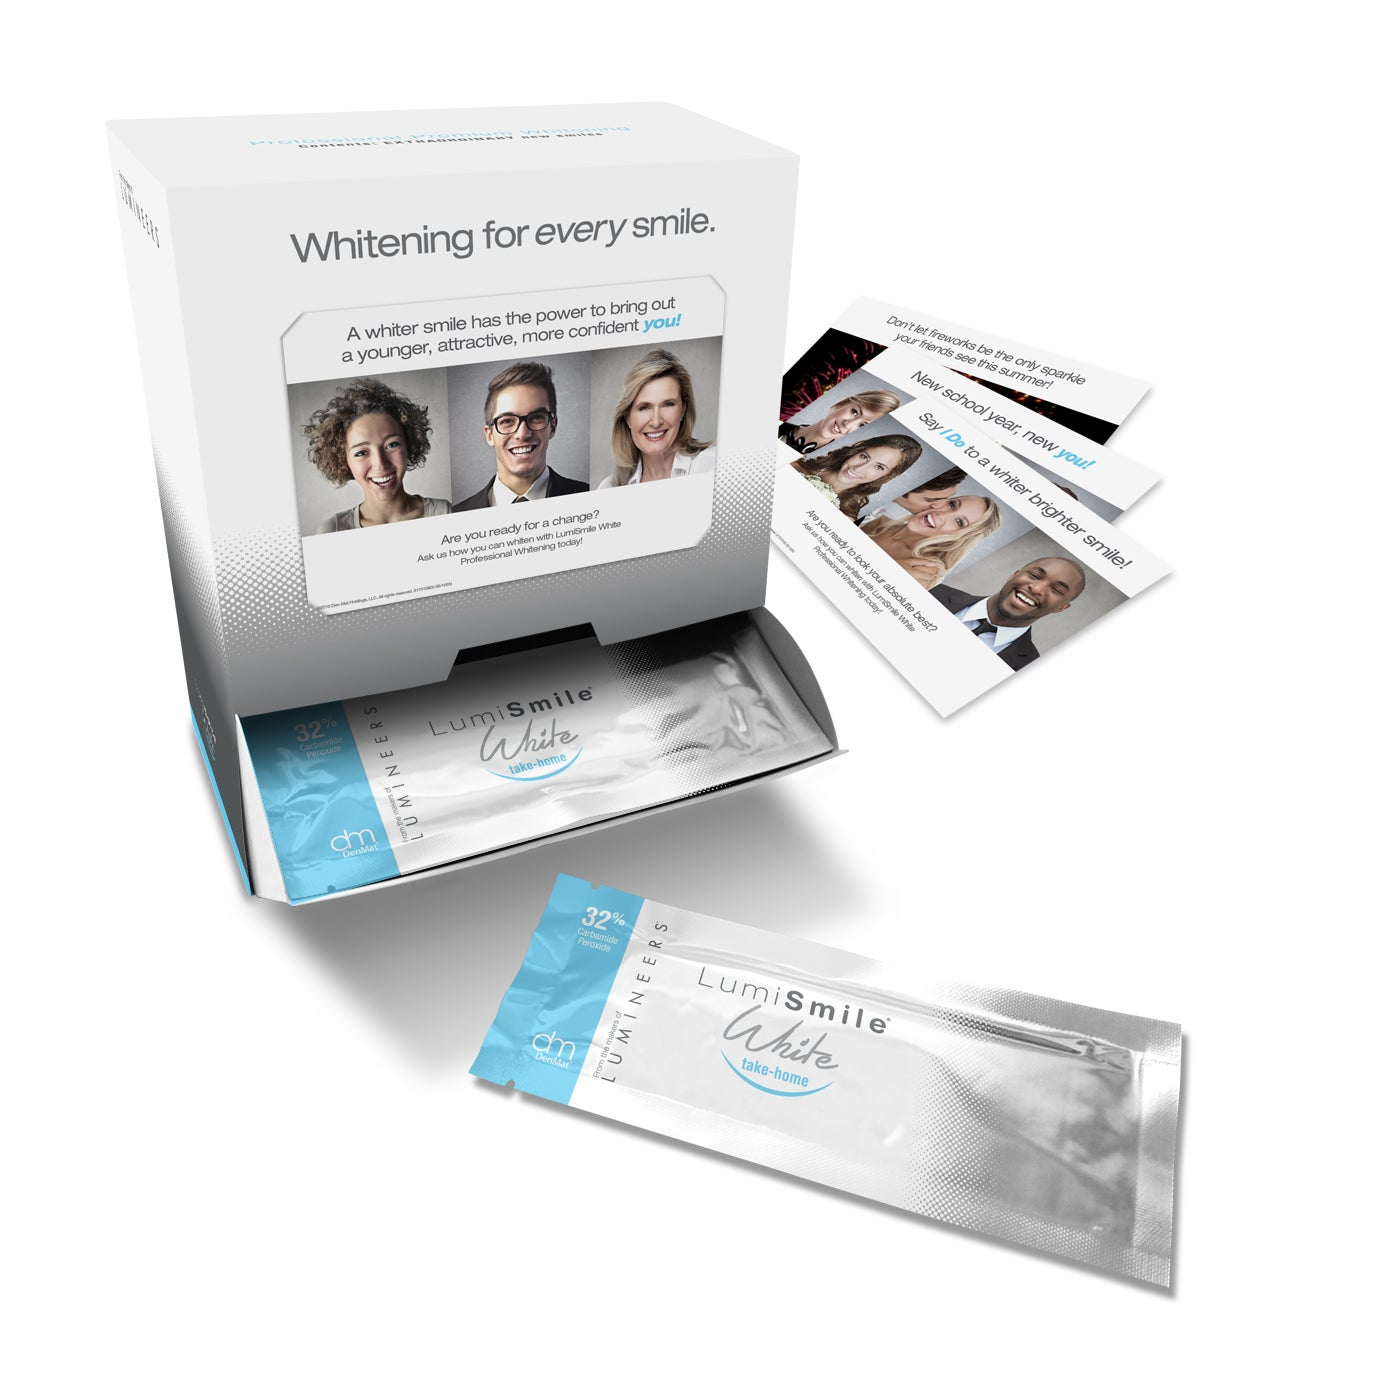 Dental Whitening Kit - LumiSmile® White Take-Home 32%